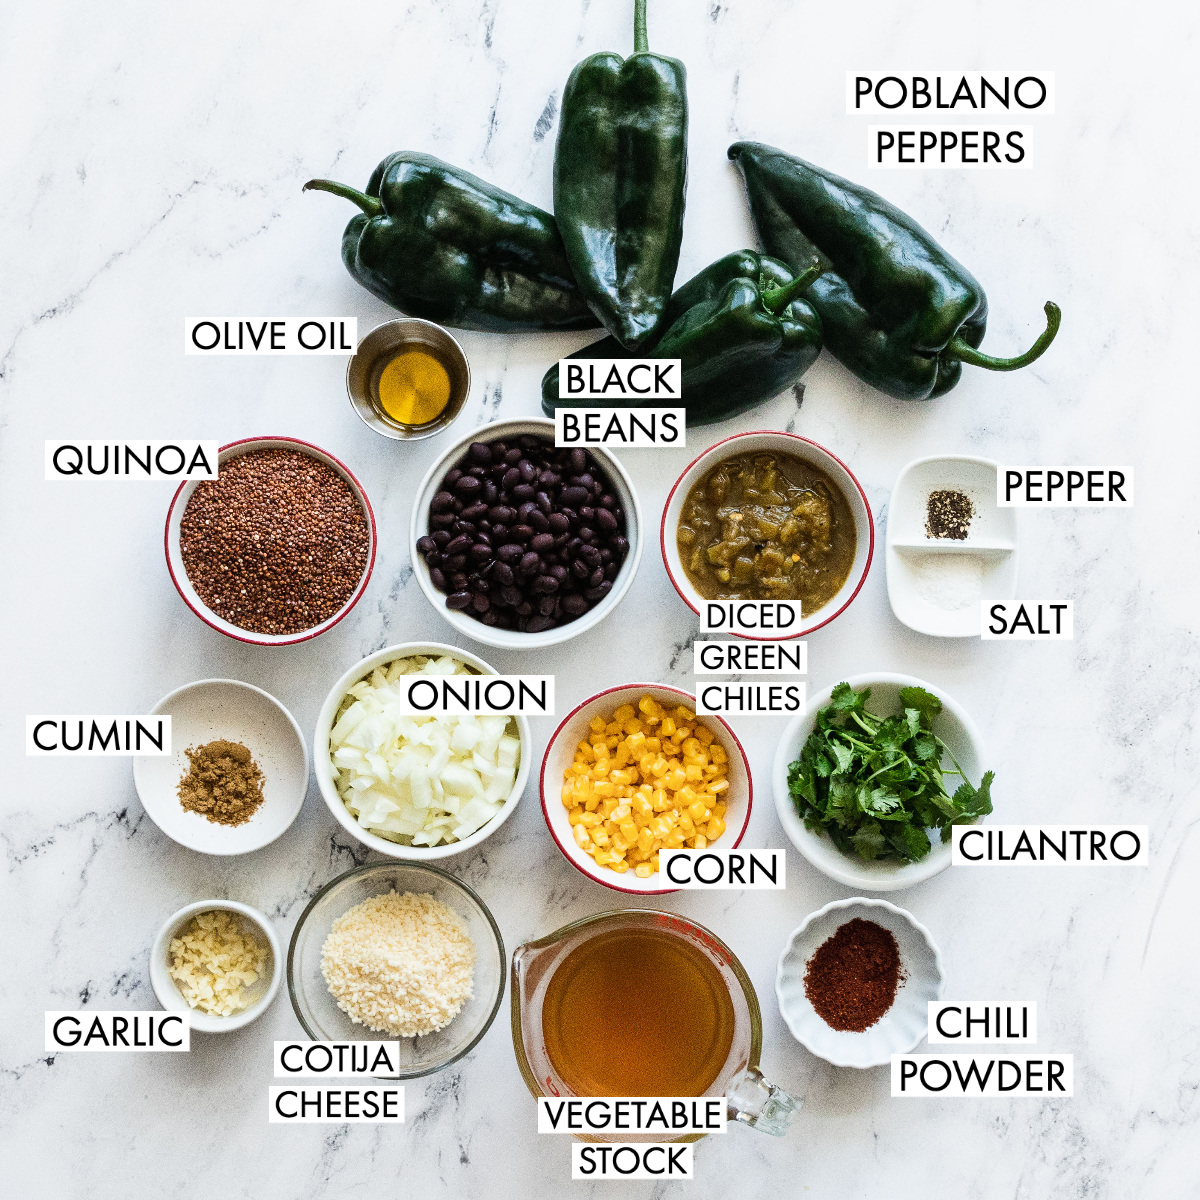 ingredients of stuffed poblano peppers